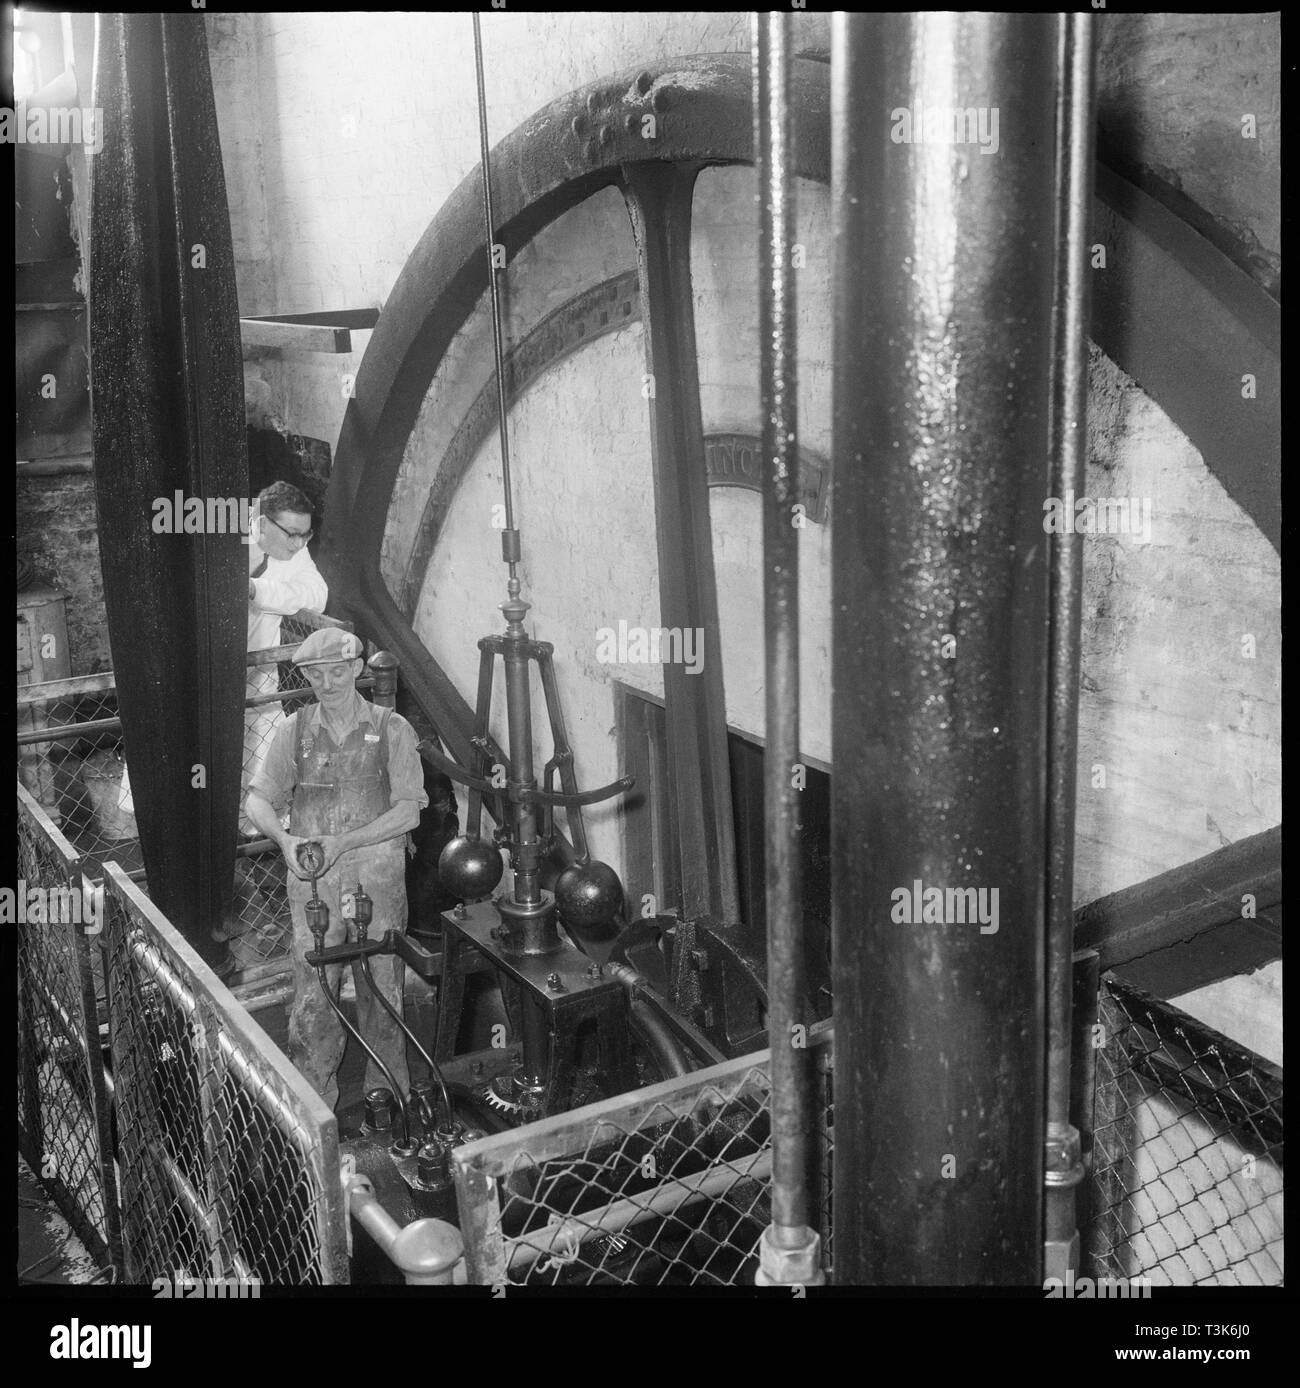 Etruscan Bone and Flint Mill, Lower Bedford Street, Etruria, Hanley, Stoke-on-Trent, 1965-1968. The mill engineer adding oil to 'Princess', the beam engine at Jesse Shirley's Bone and Flint Mill (Etruscan Mills). The mill was constructed by Shirley in 1856. It was used to crush flint and bone which was added to clay to provide the raw material for the production of earthenware goods. It is now home to the Etruria Industrial Museum. - Stock Image